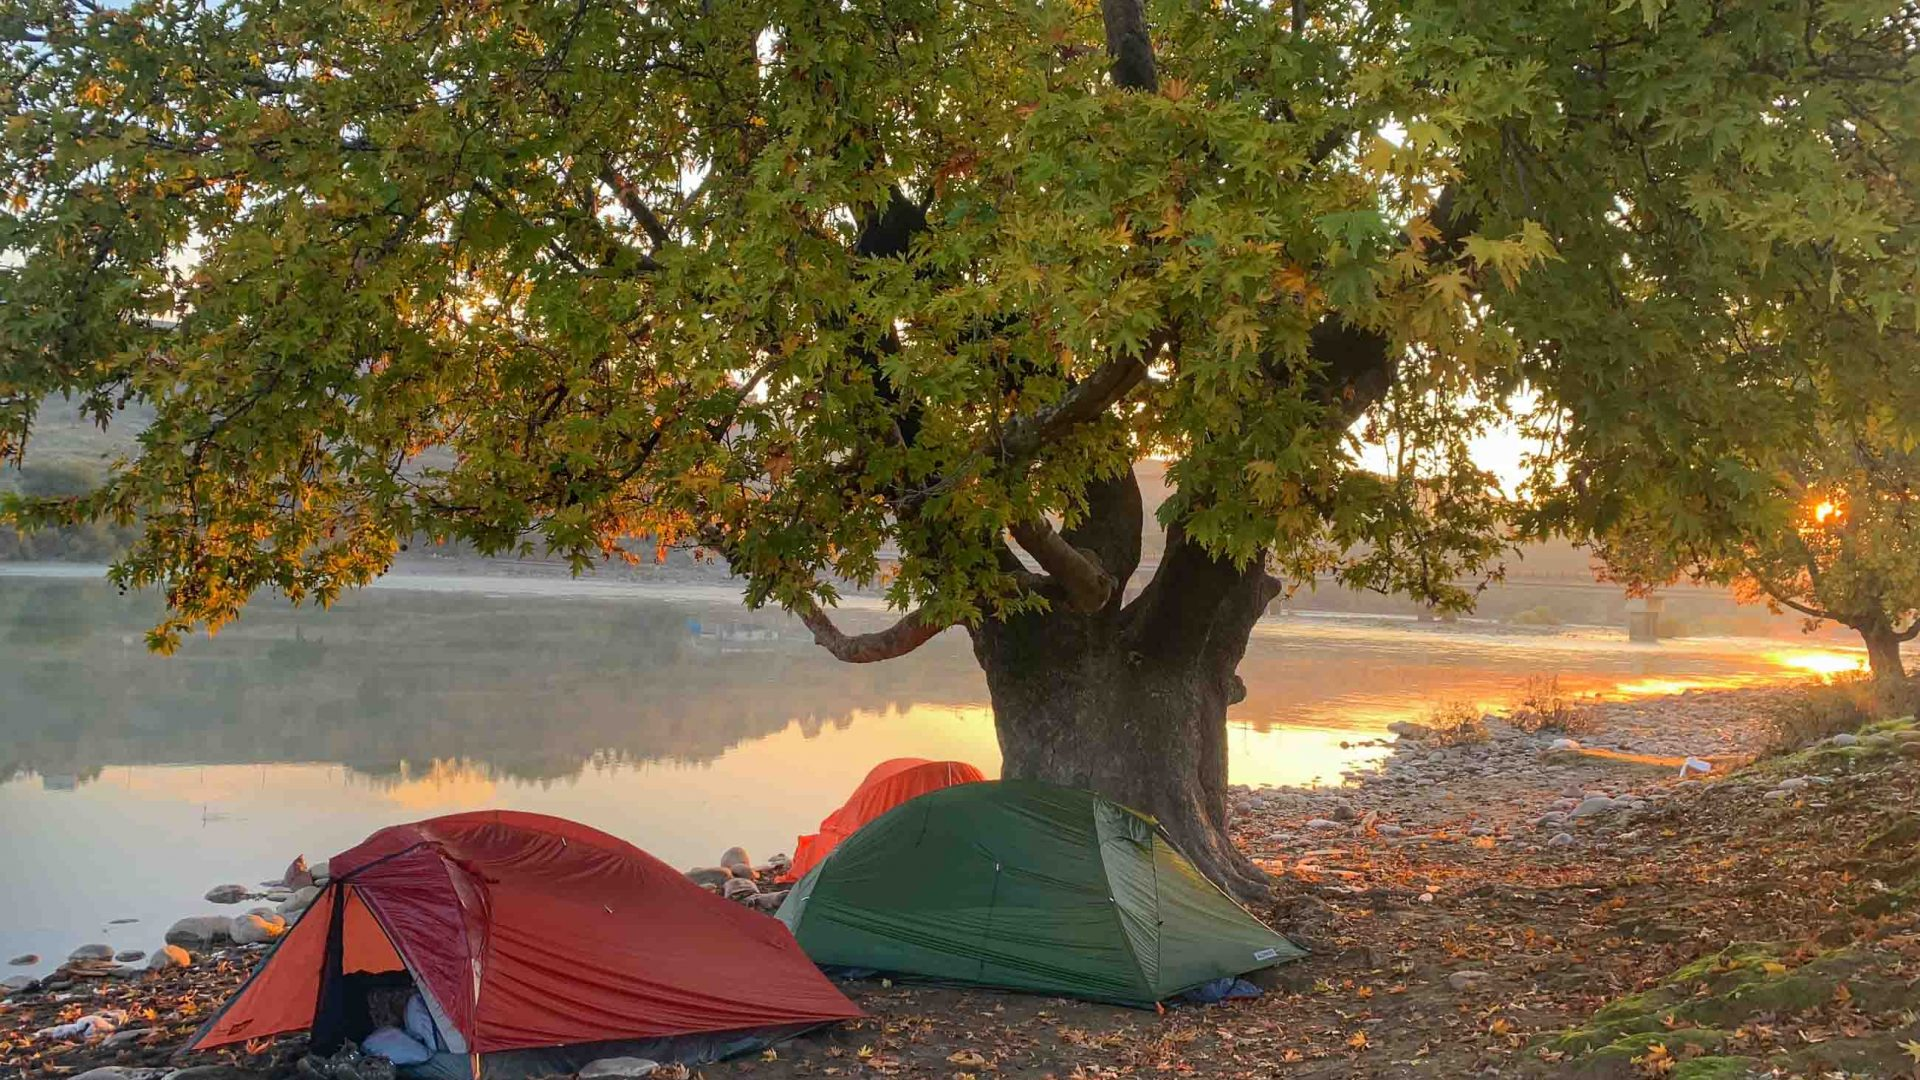 Two tents alongside a river at sunset.